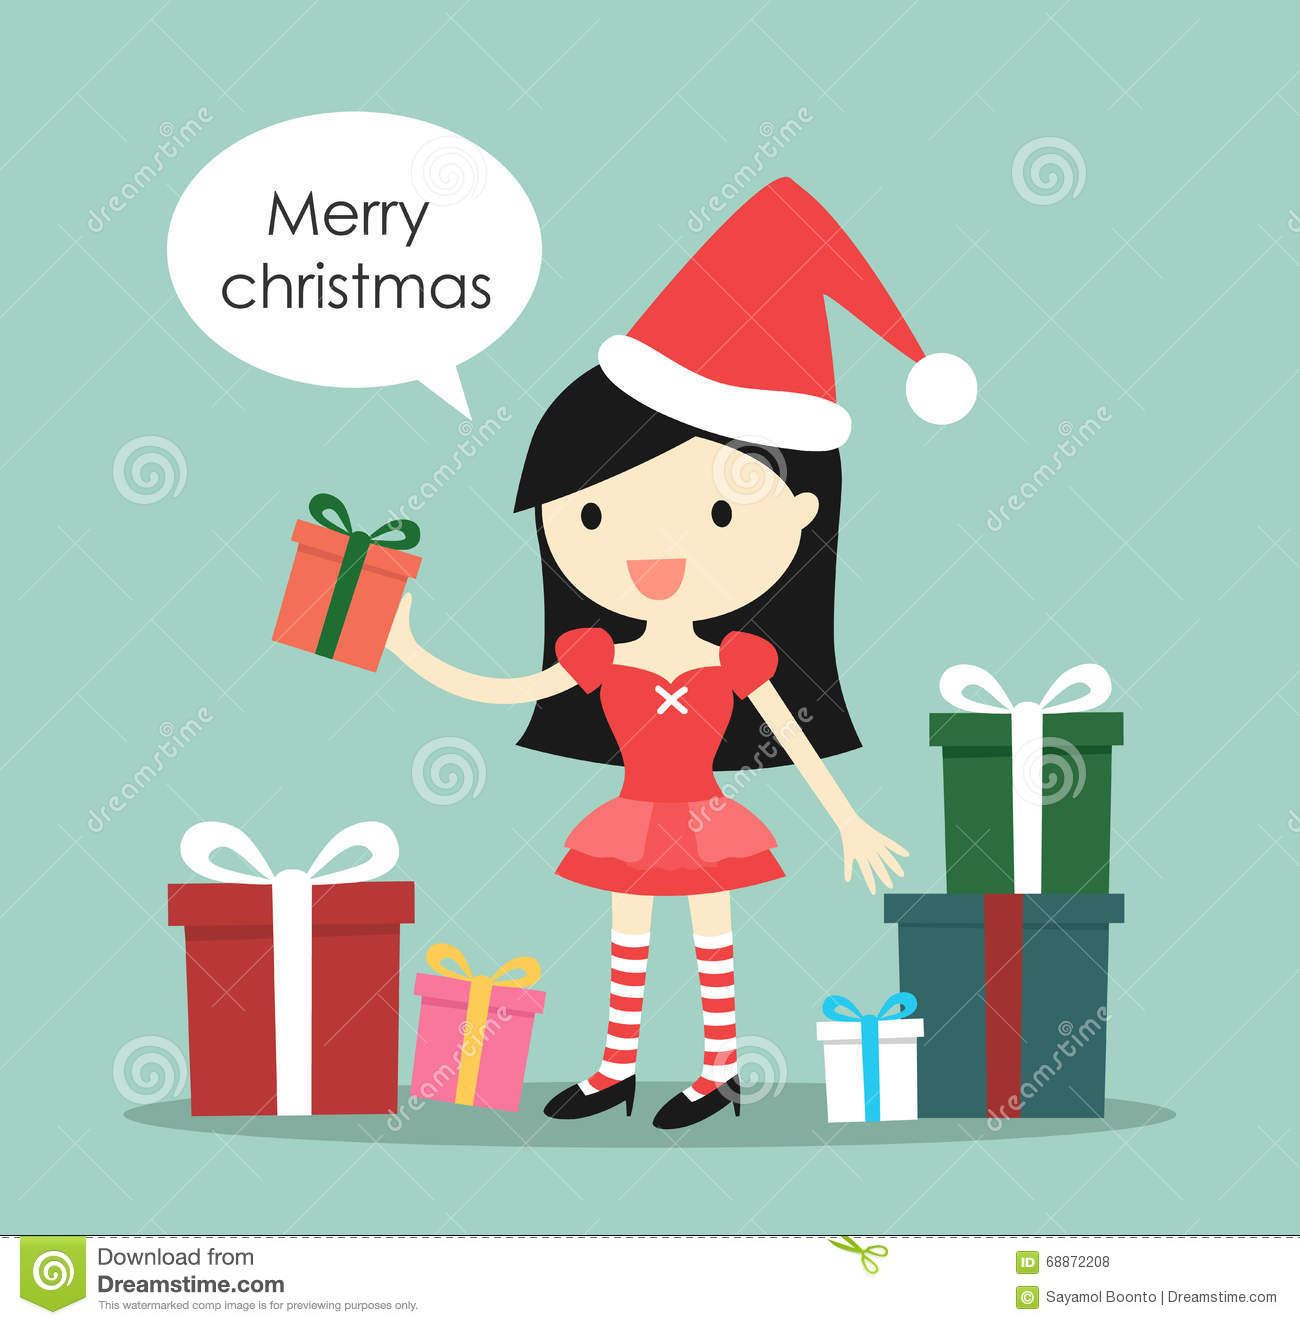 Santa Girl With A Lot Of Gift Boxes And Saying \'Merry Christmas ...